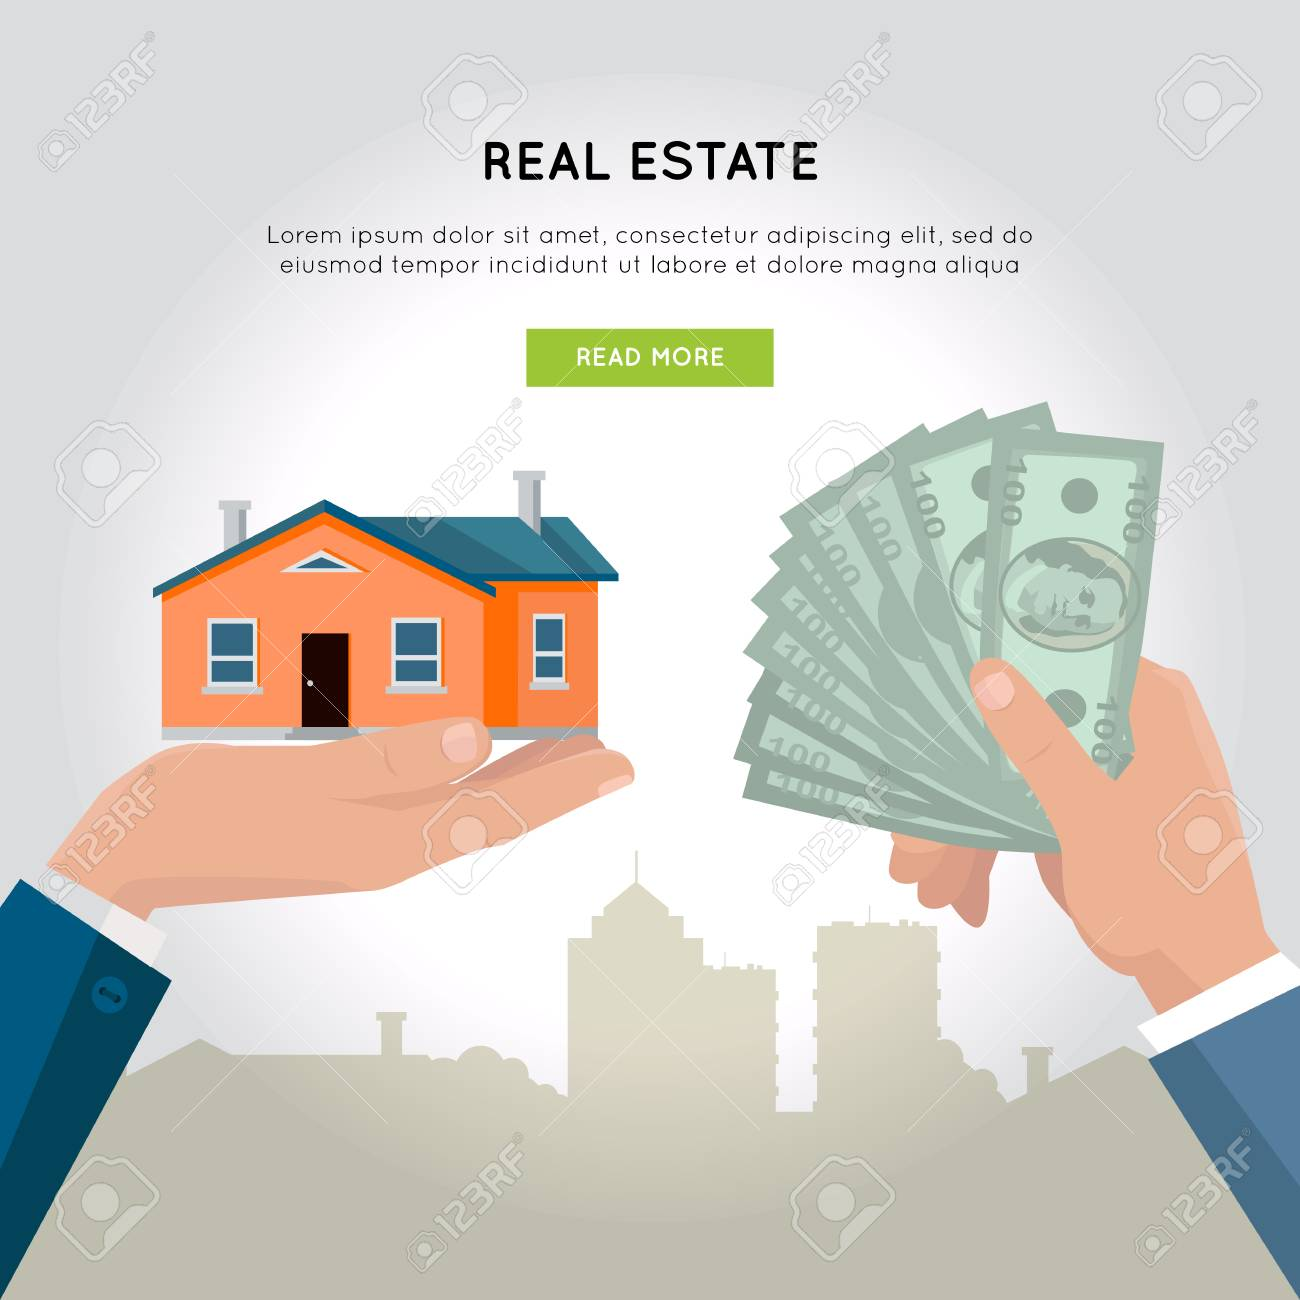 Real Estate Vector Web Banner In Flat Design Hands With House Royalty Free Cliparts Vectors And Stock Illustration Image 67691519